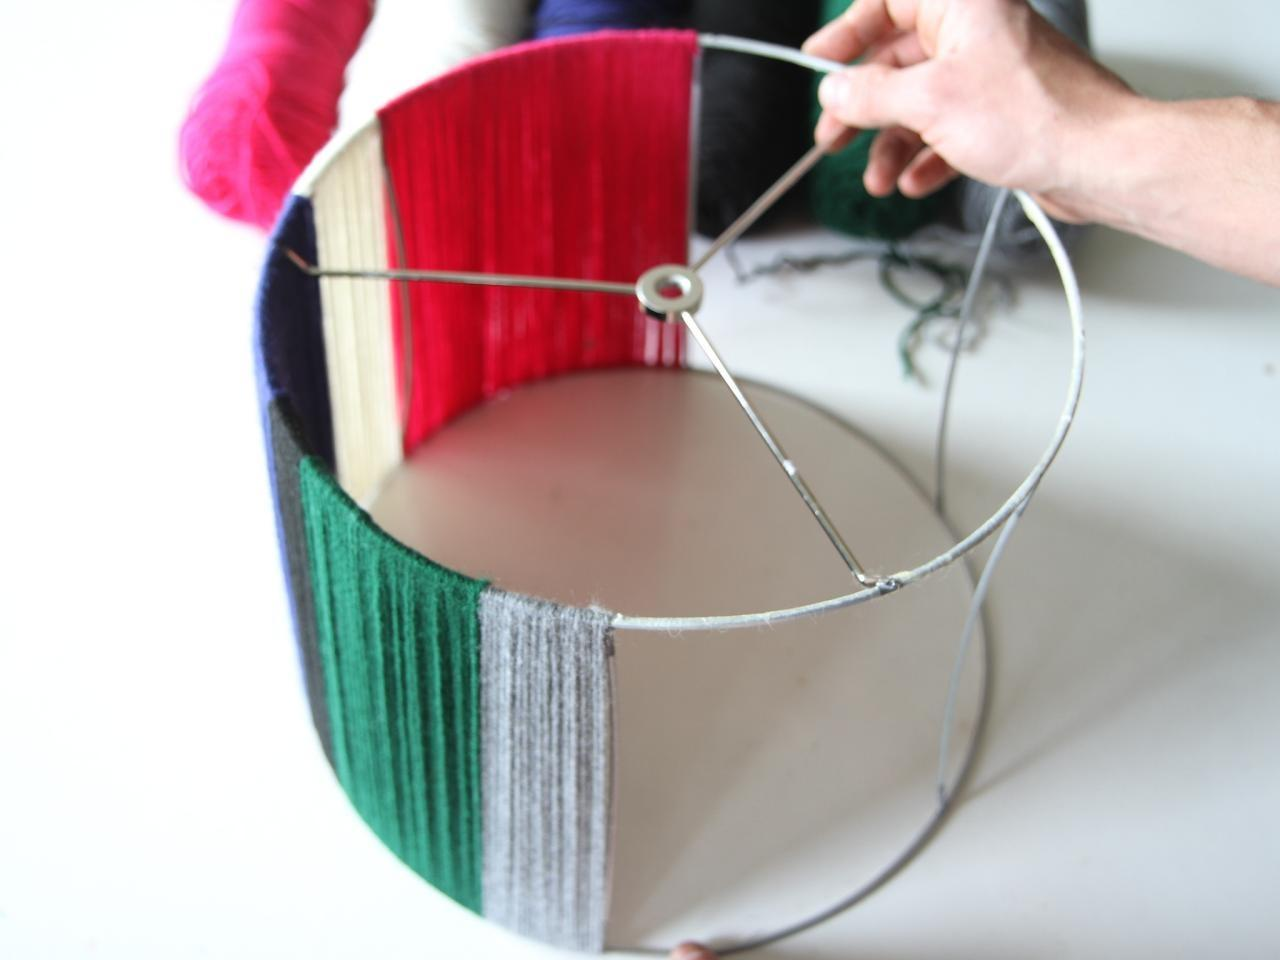 Make Yarn Lampshade Danmade Watch Dan Faires